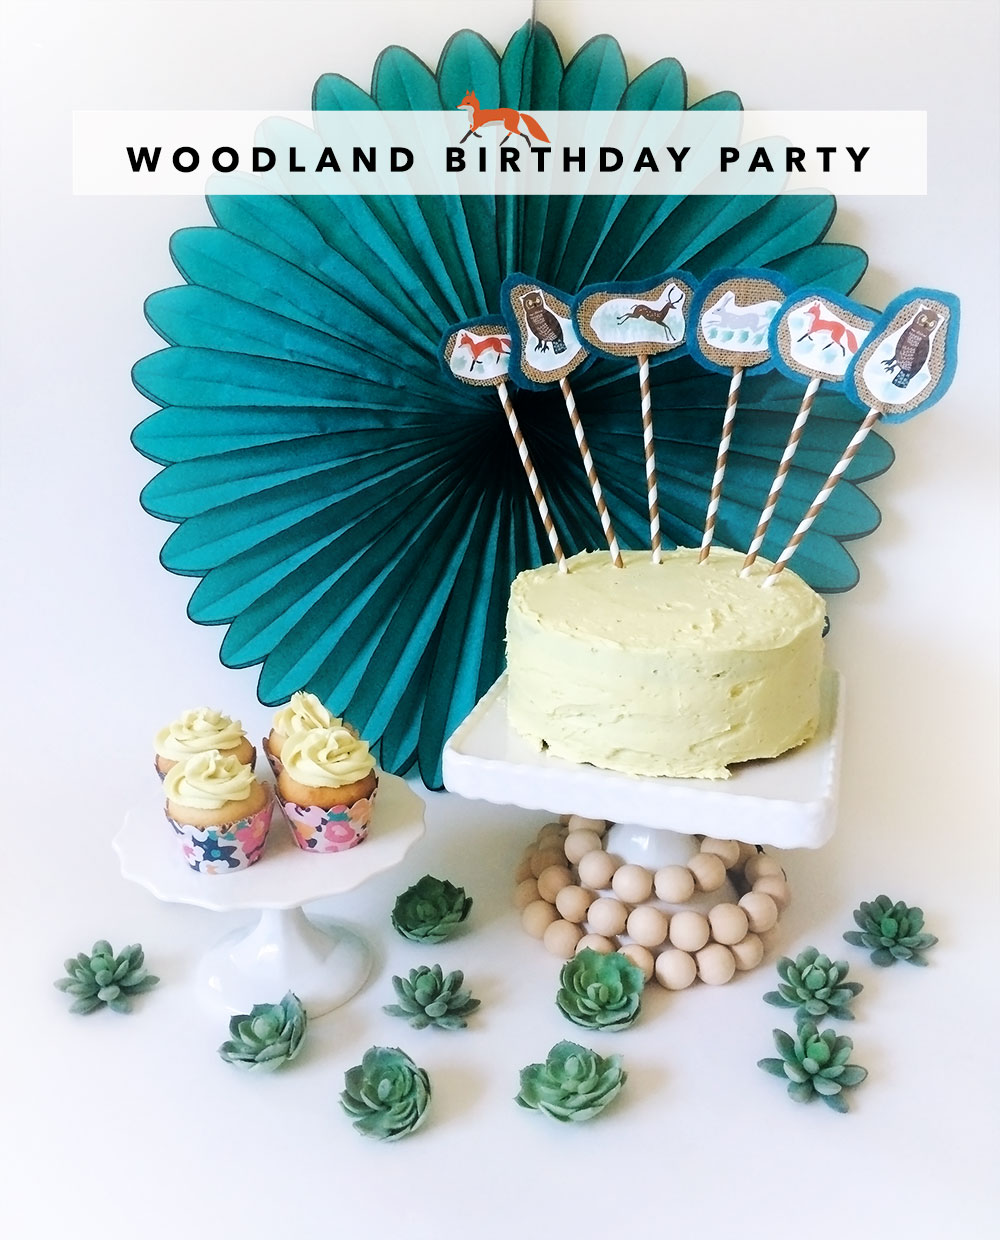 Woodland Party DIY ideas, crafts, tutorial